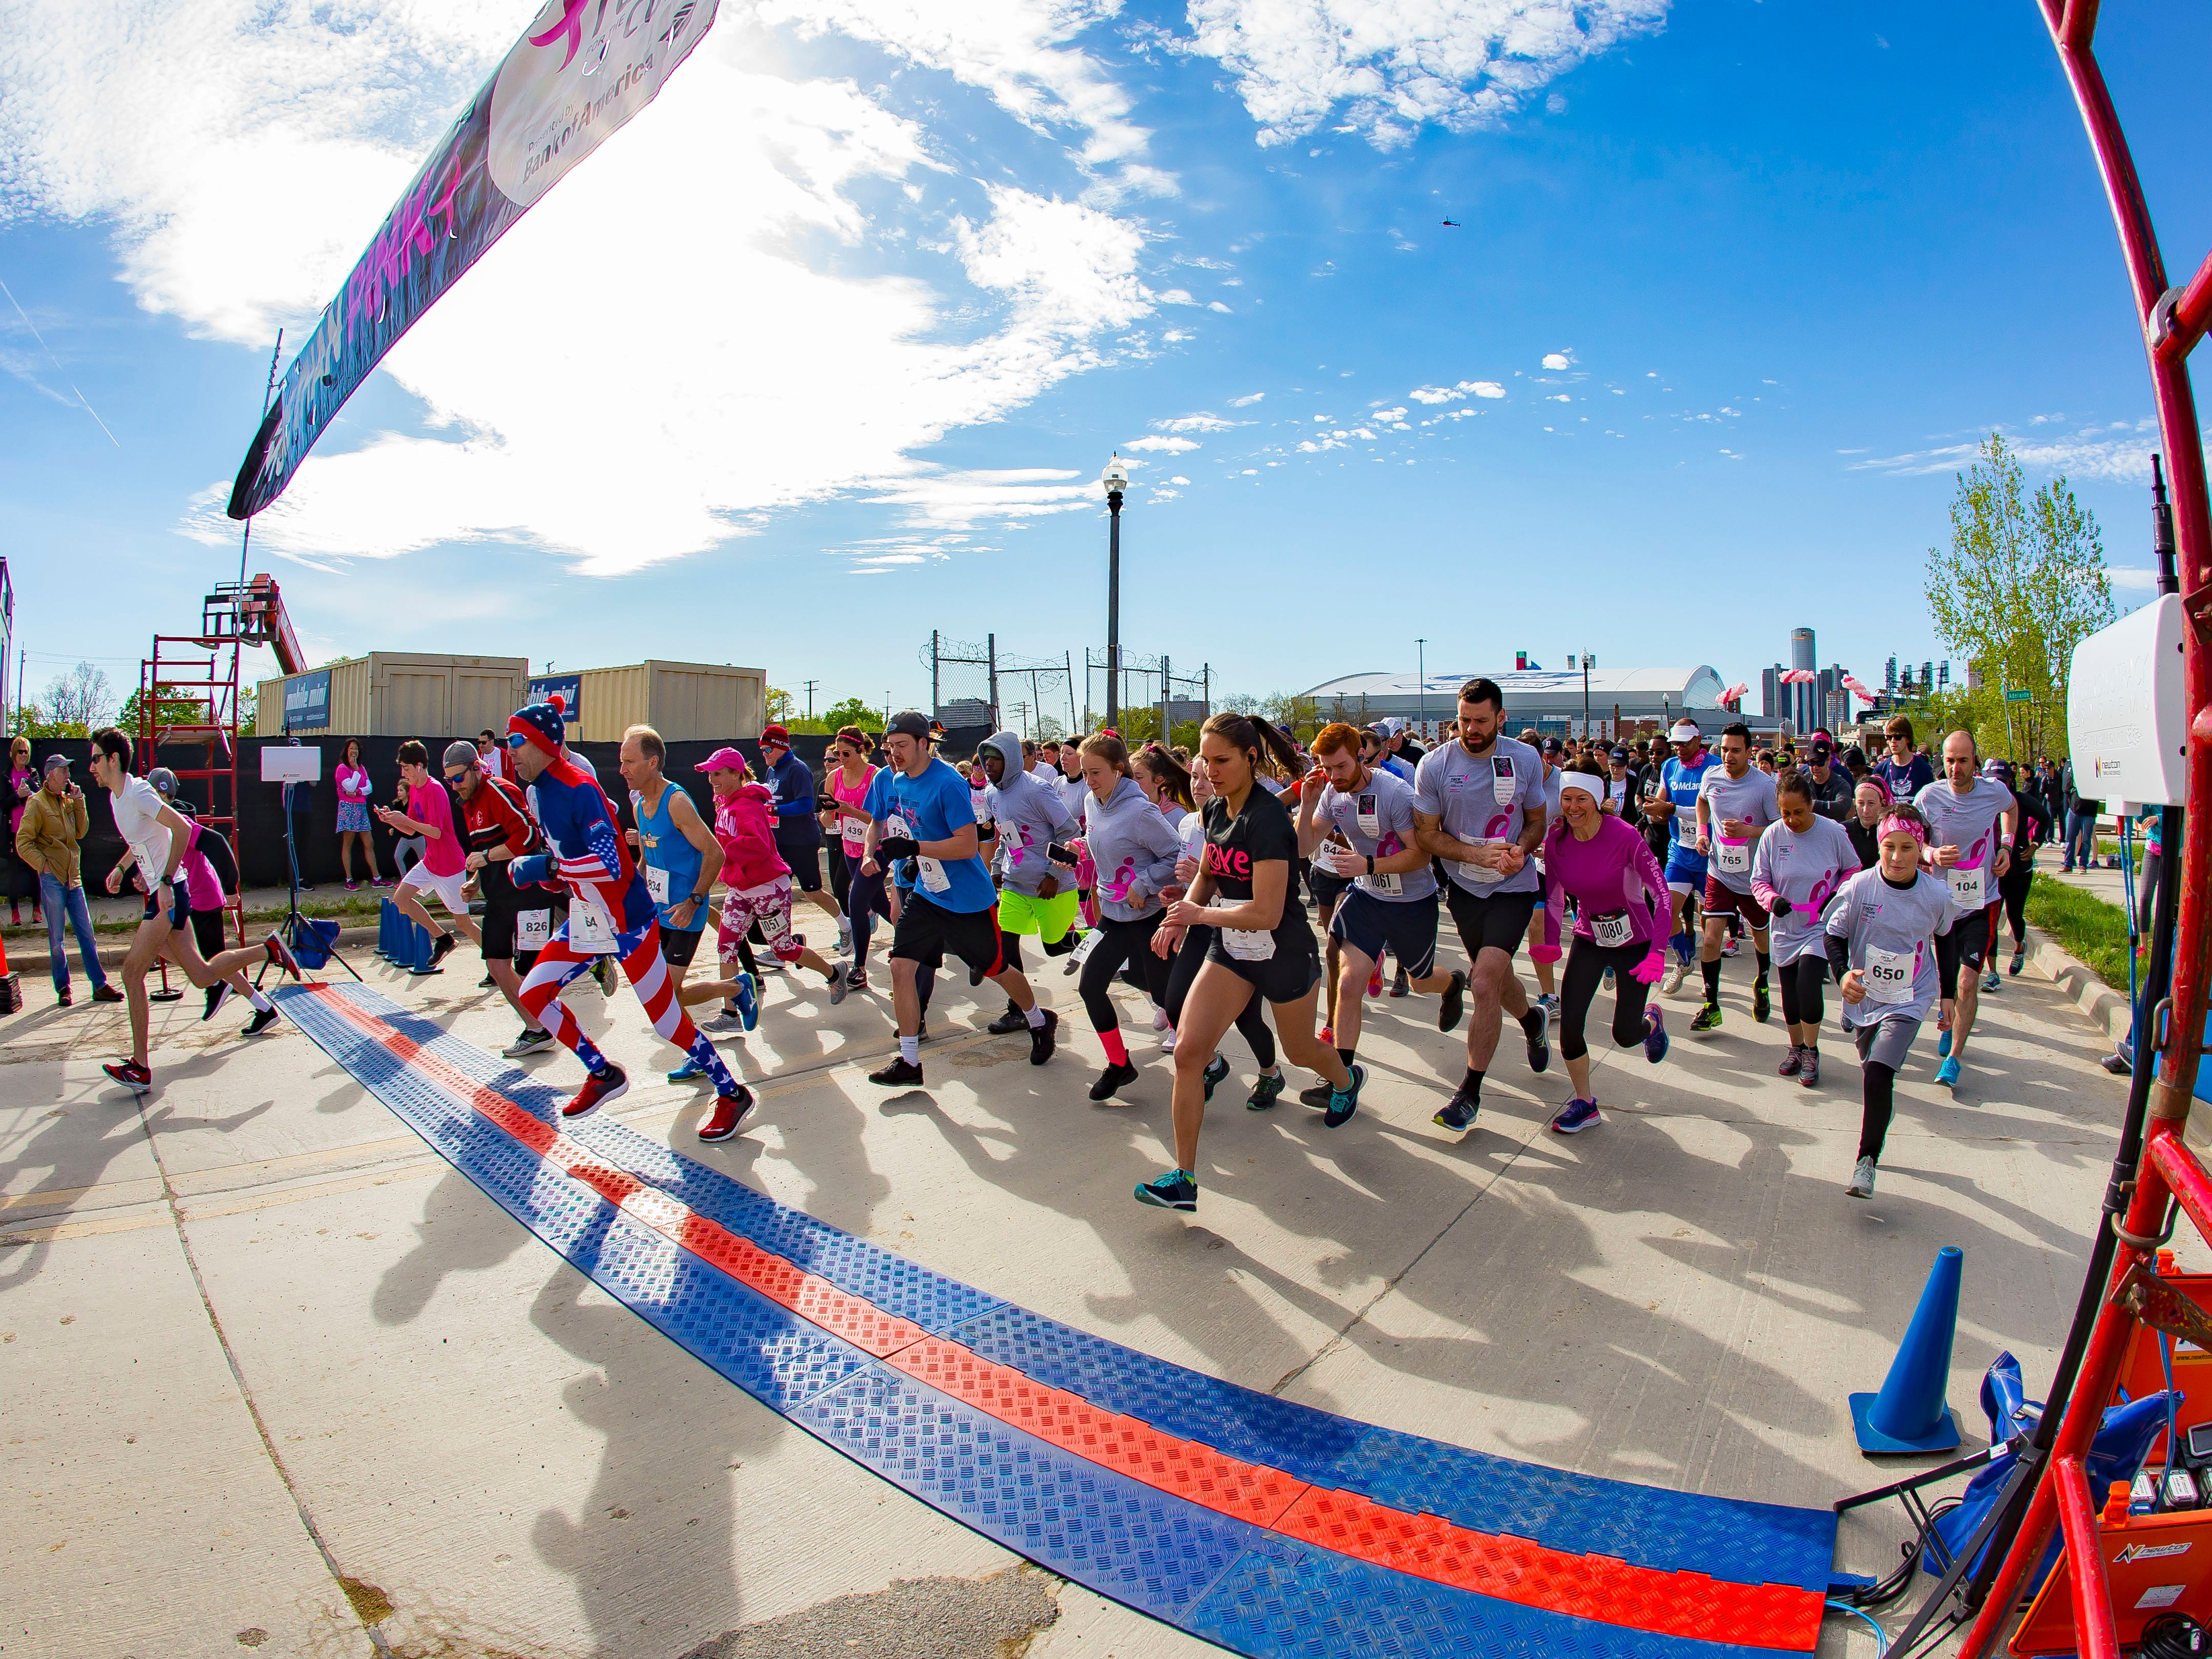 Participants start their 5K race/walk during the Susan G. Komen Race for the Cure at Comerica Park in Detroit Michigan. (Photo by Dave Reginek-Special to Detroit News)